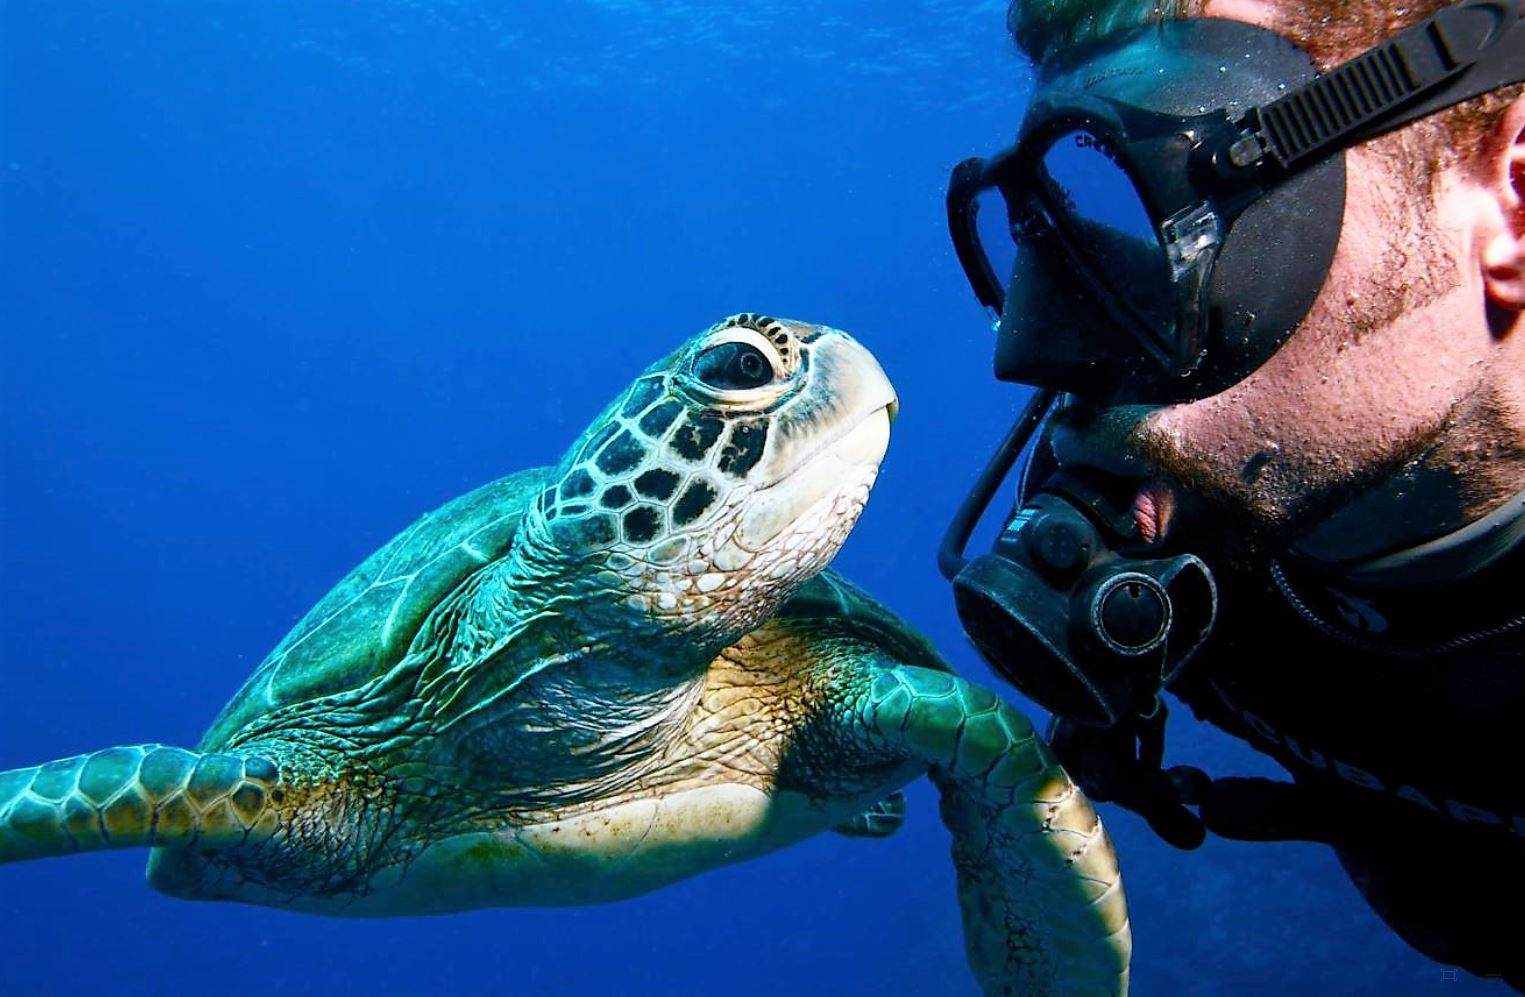 5 Day Learn To Scuba Dive Open Water Course | Great ...